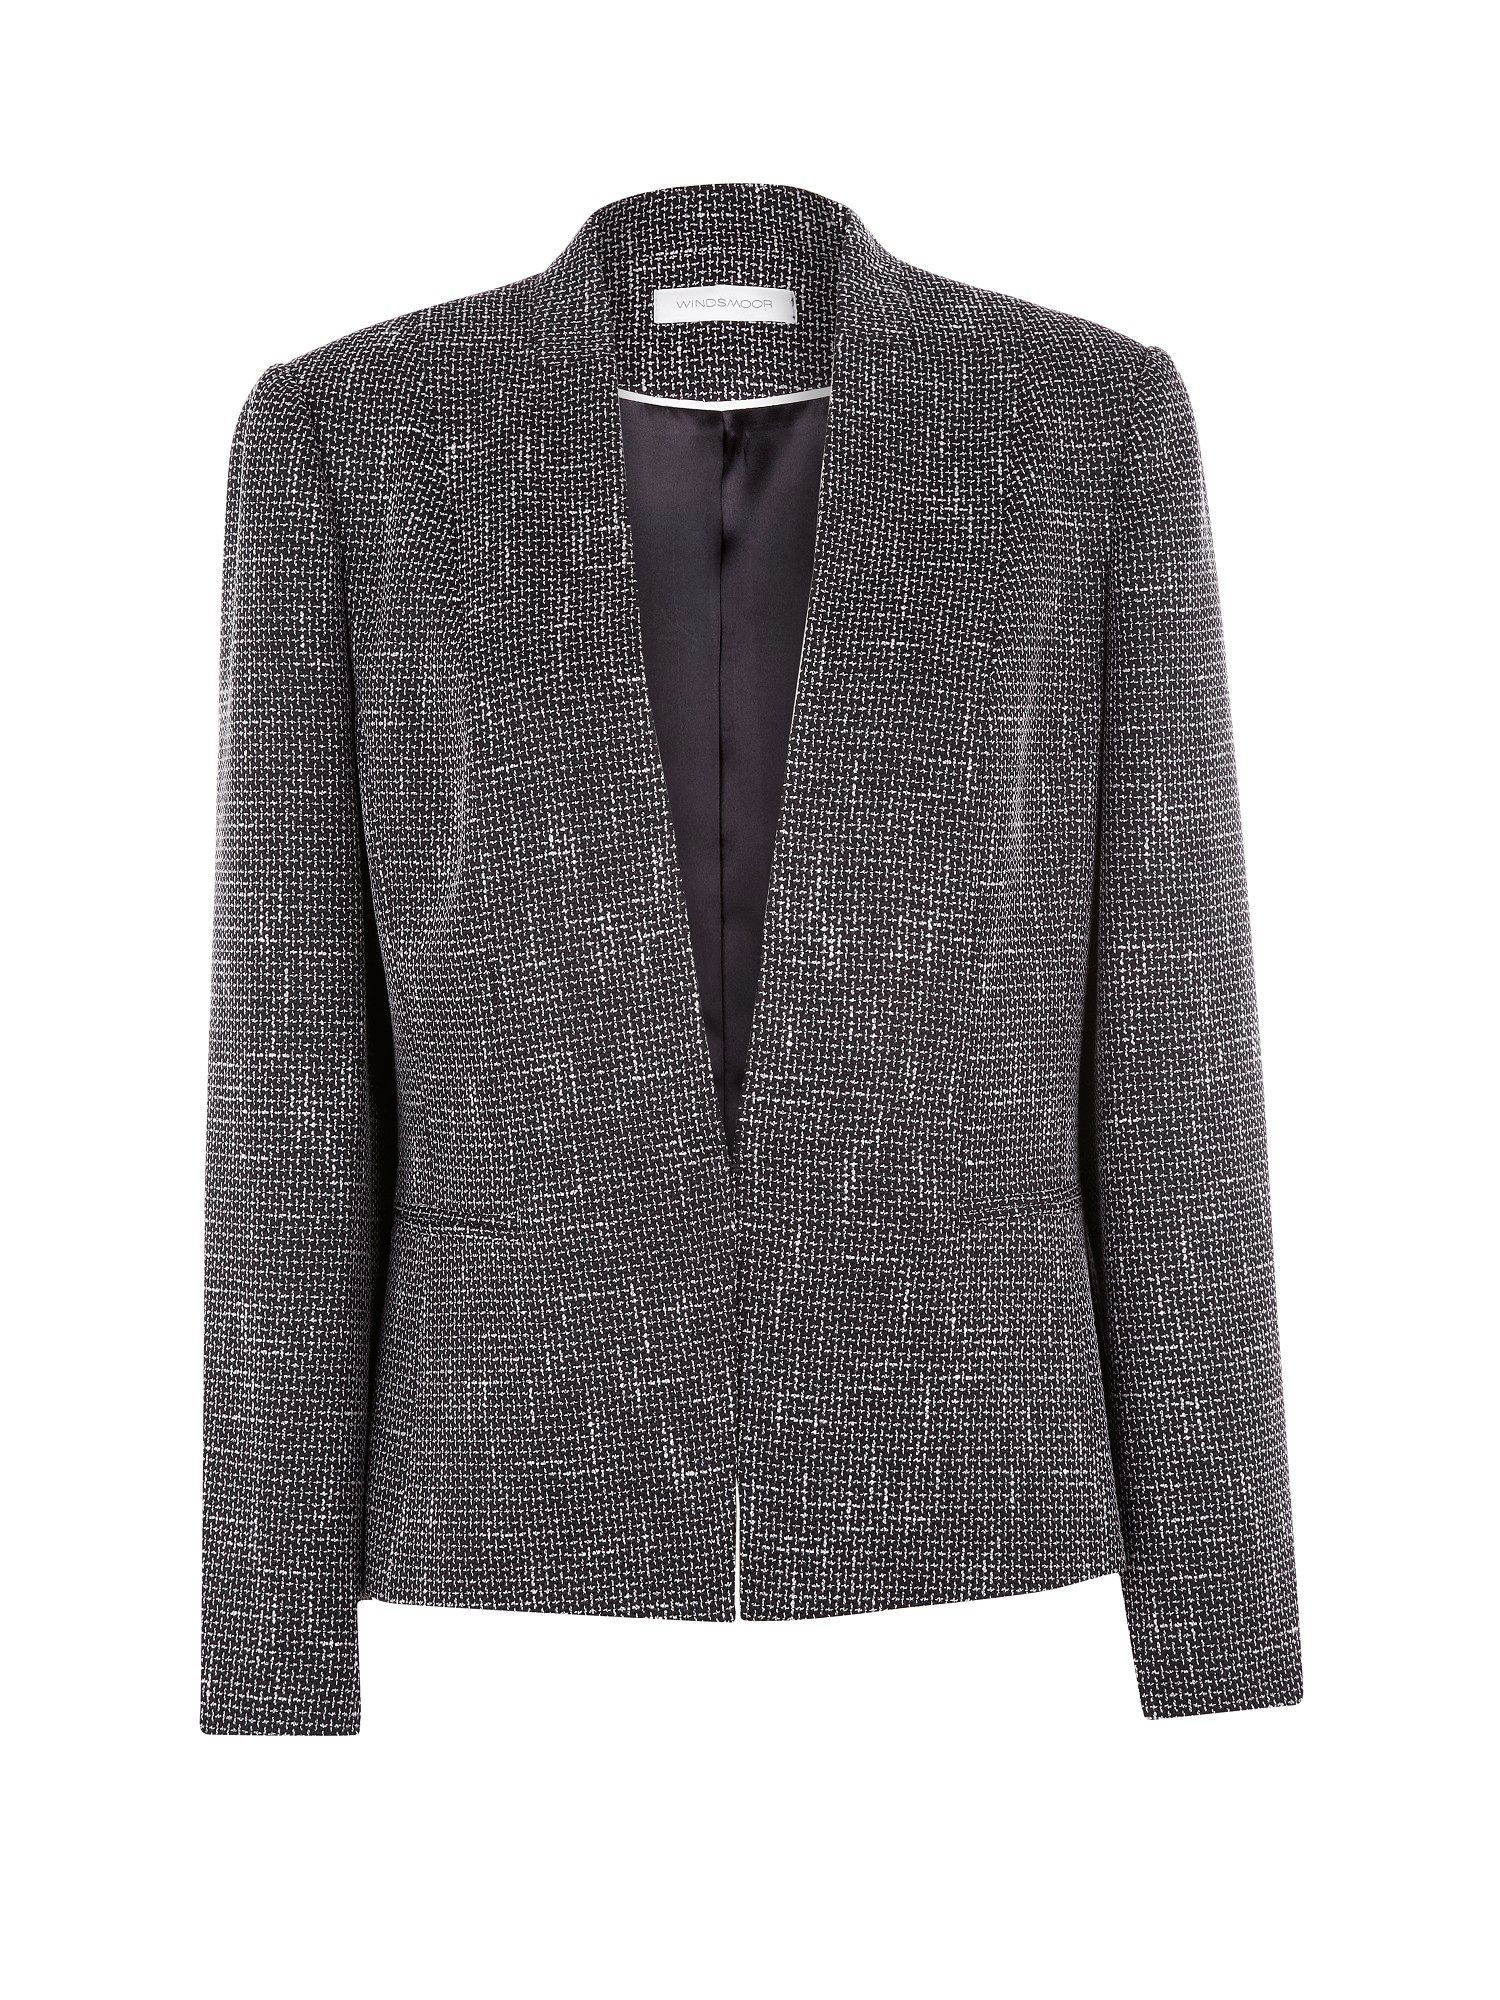 Black and white tweed jacket